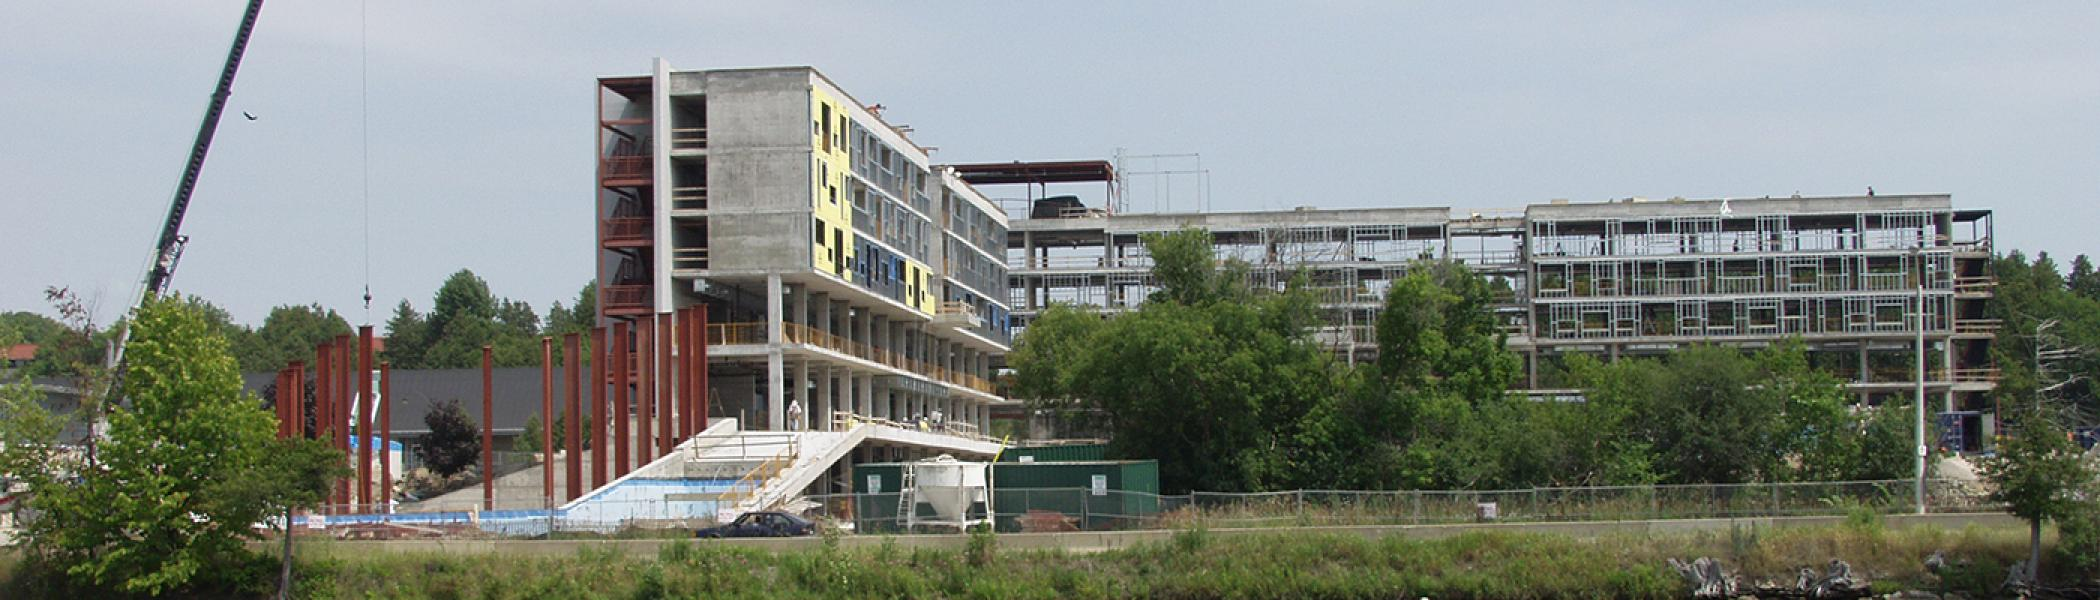 Image of the building under construction